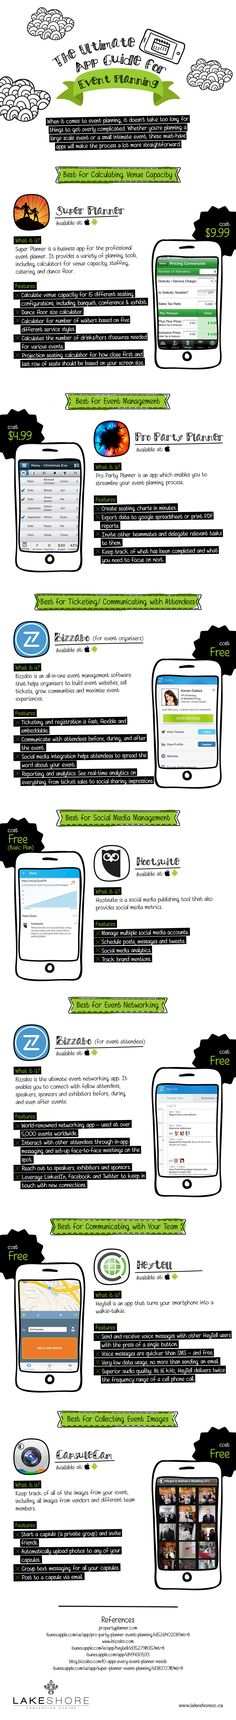 Infographic: The Ultimate App Guide for Event Planning #MobileTech #Mobile #tech